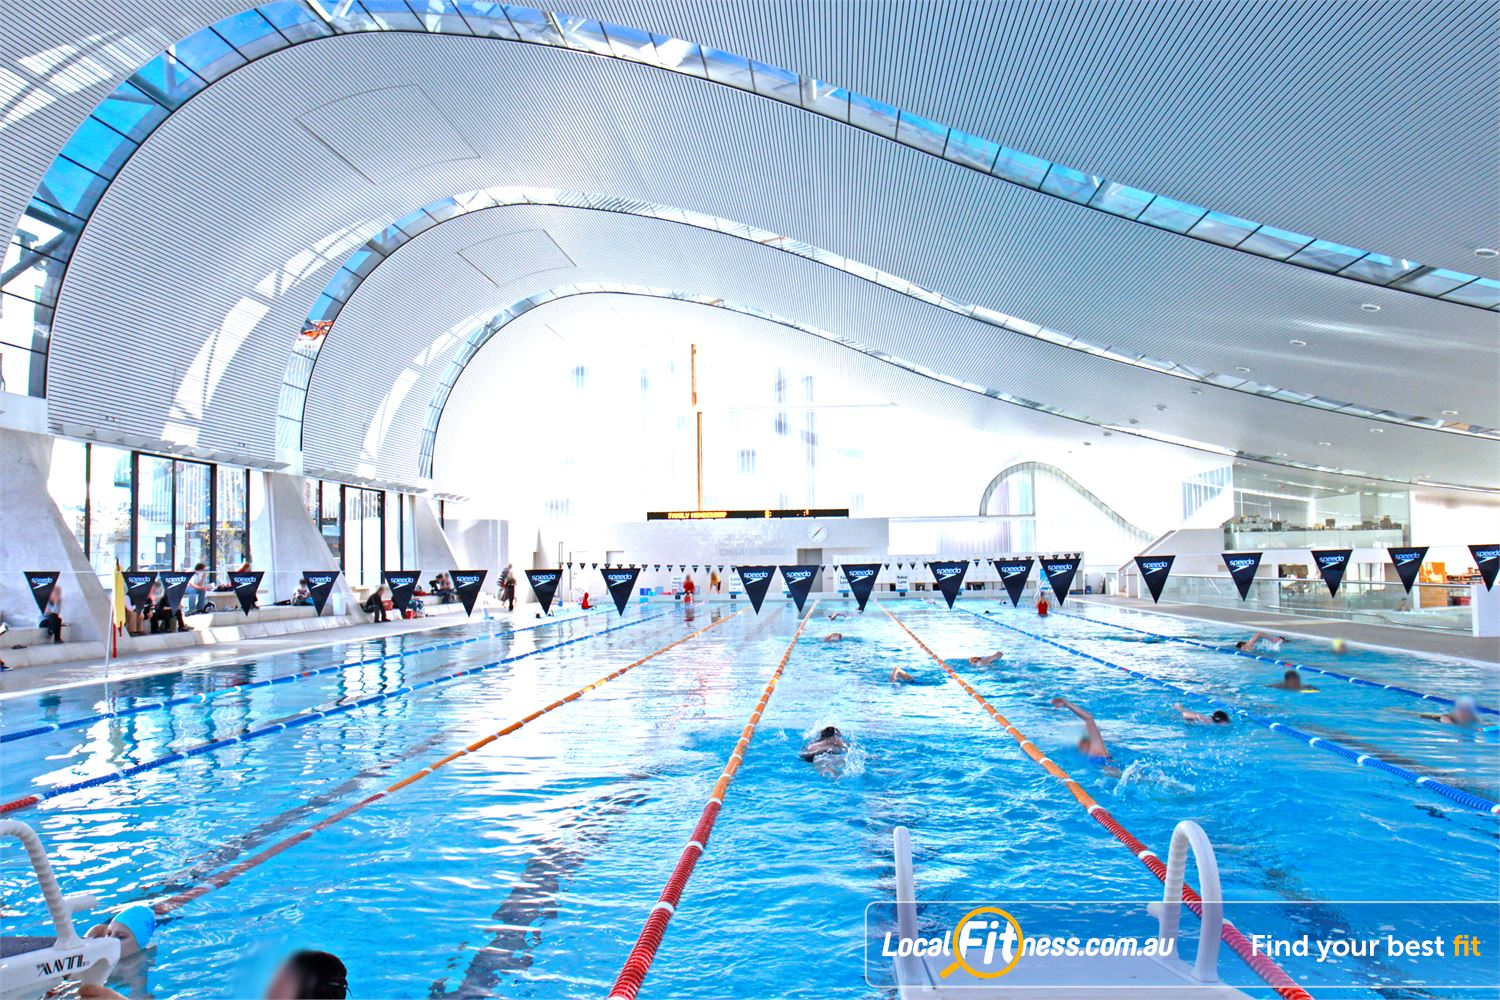 Ian Thorpe Aquatic Centre Ultimo Gym Free 1 Day Trial Pass Free 1 Day Group Fitness Class Pass